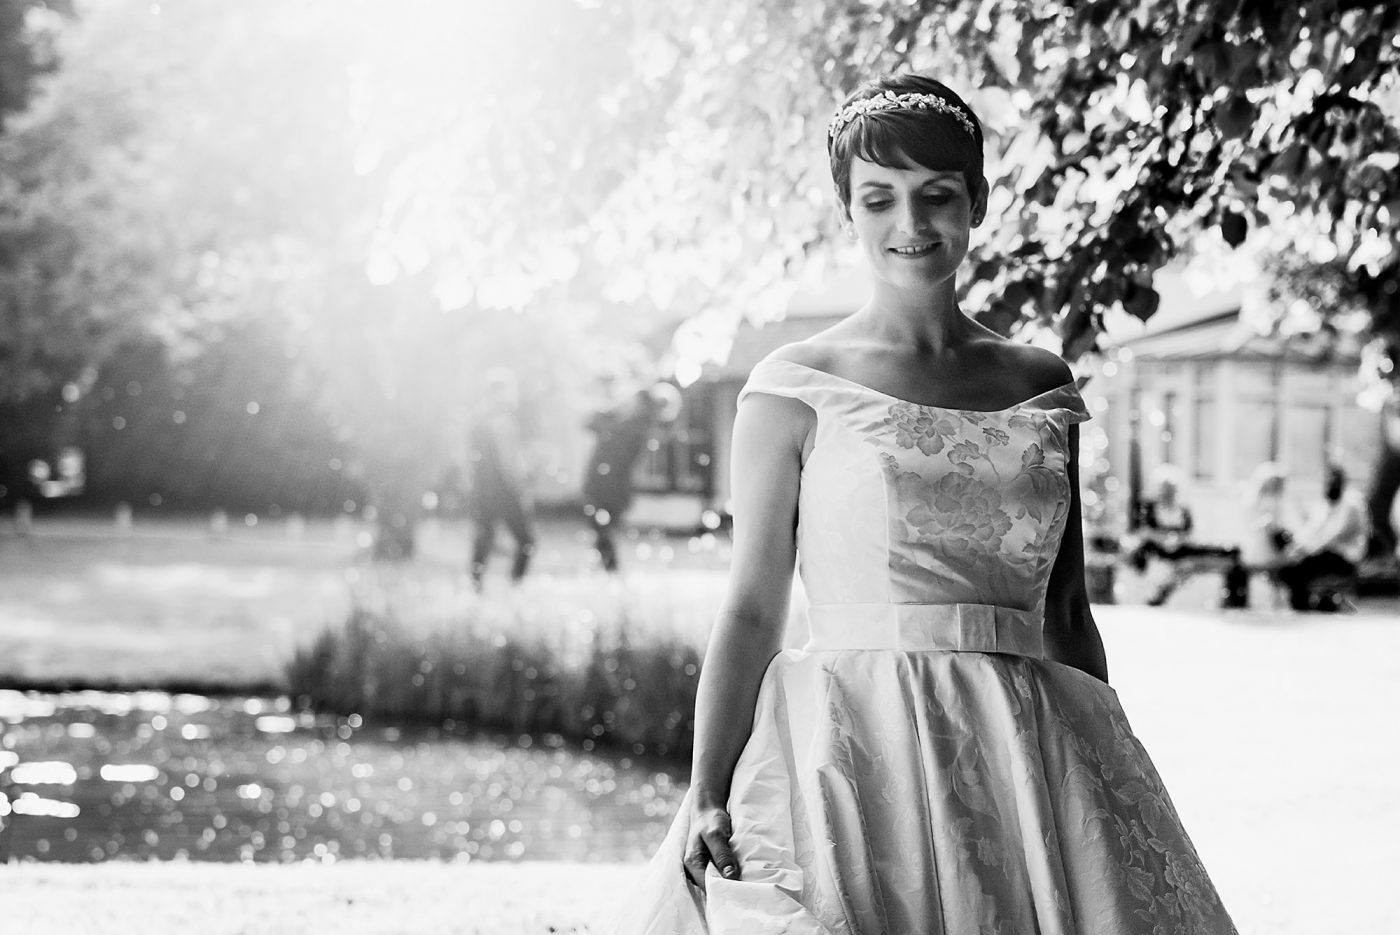 blakc and white photo of the bride with sun flare